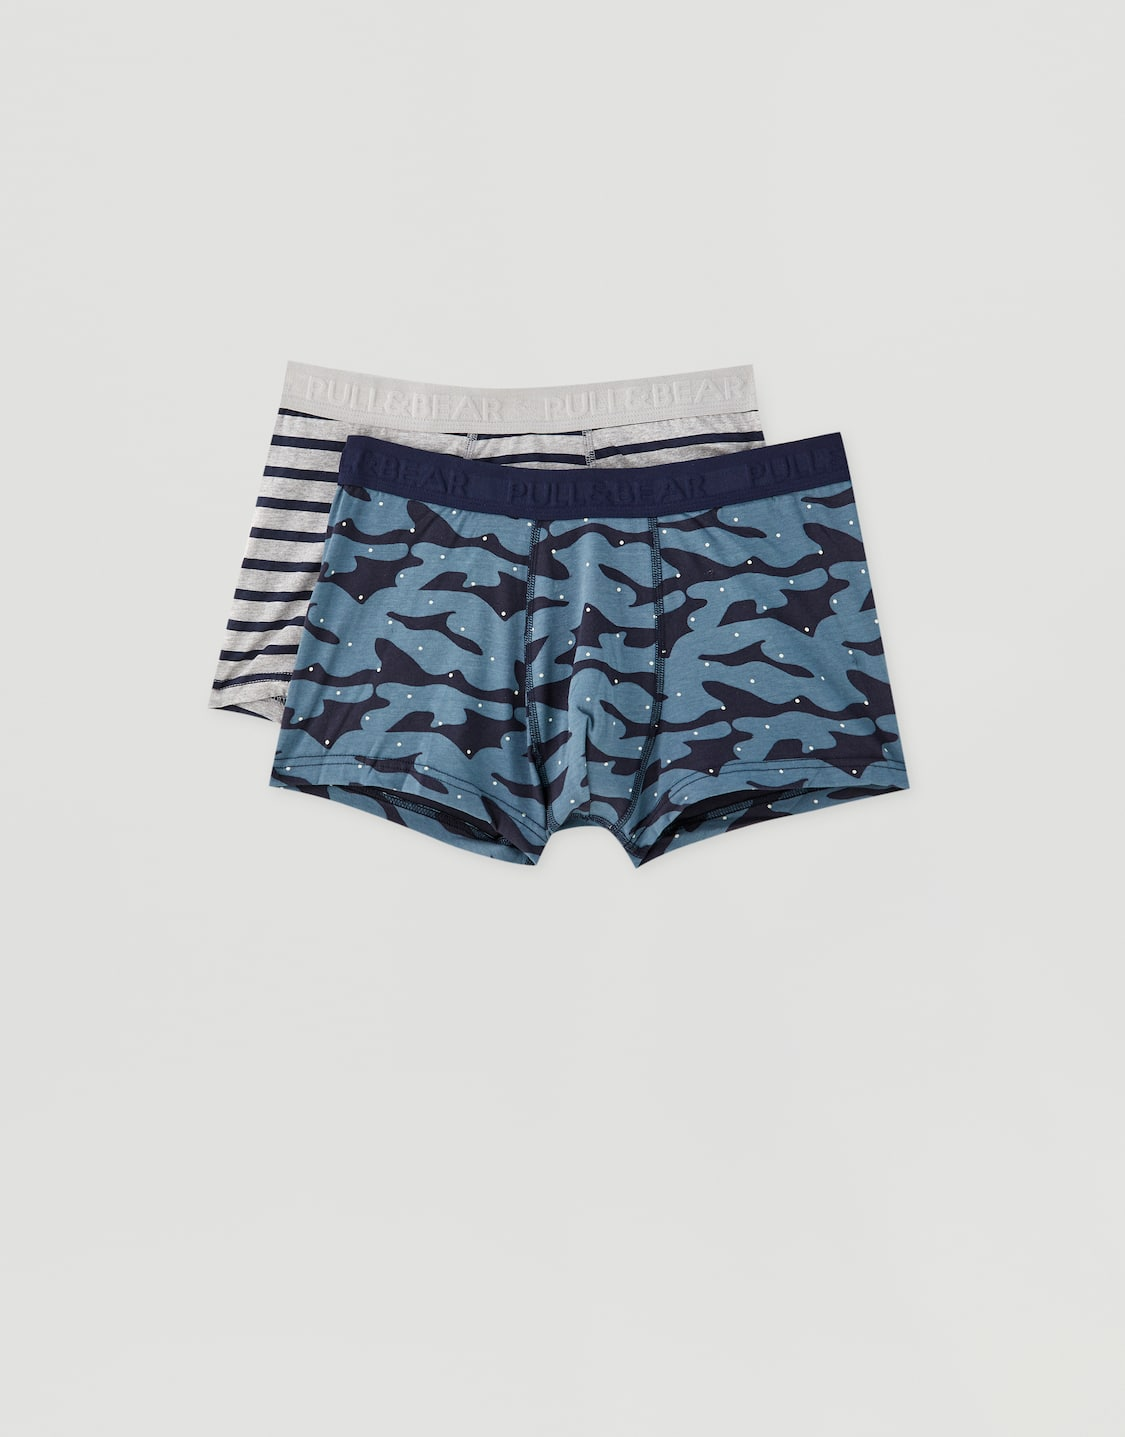 Pack of 2 striped and camouflage boxers